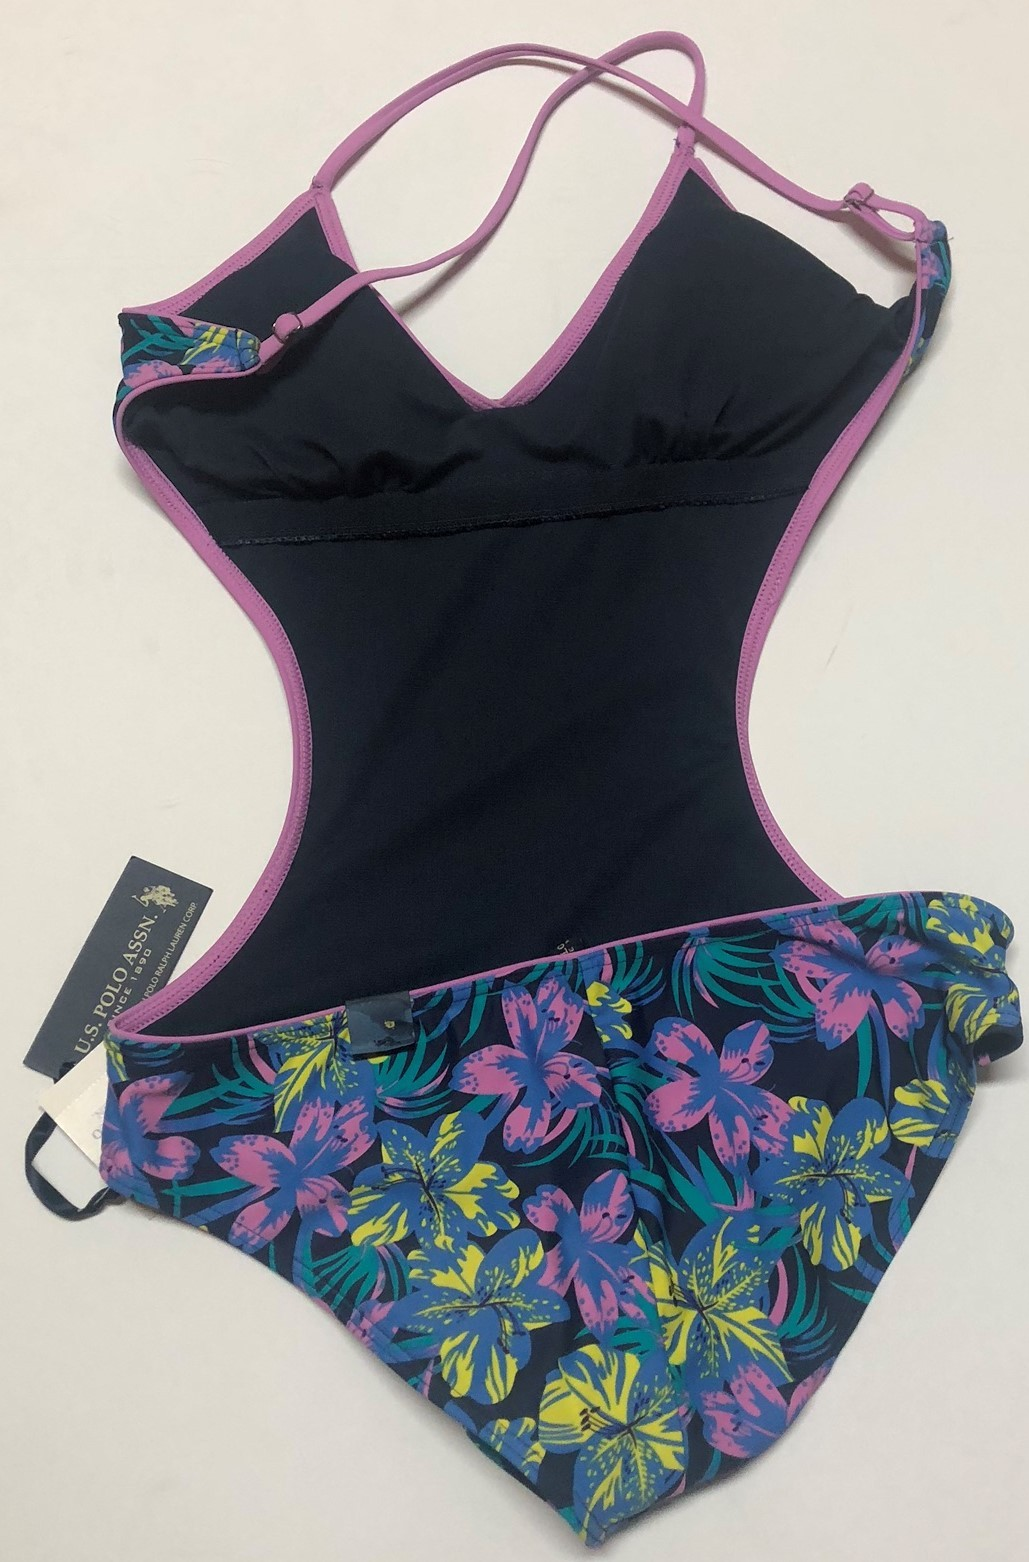 U.S. Polo One Piece Swimsuit Floral Open Back Sz M image 4